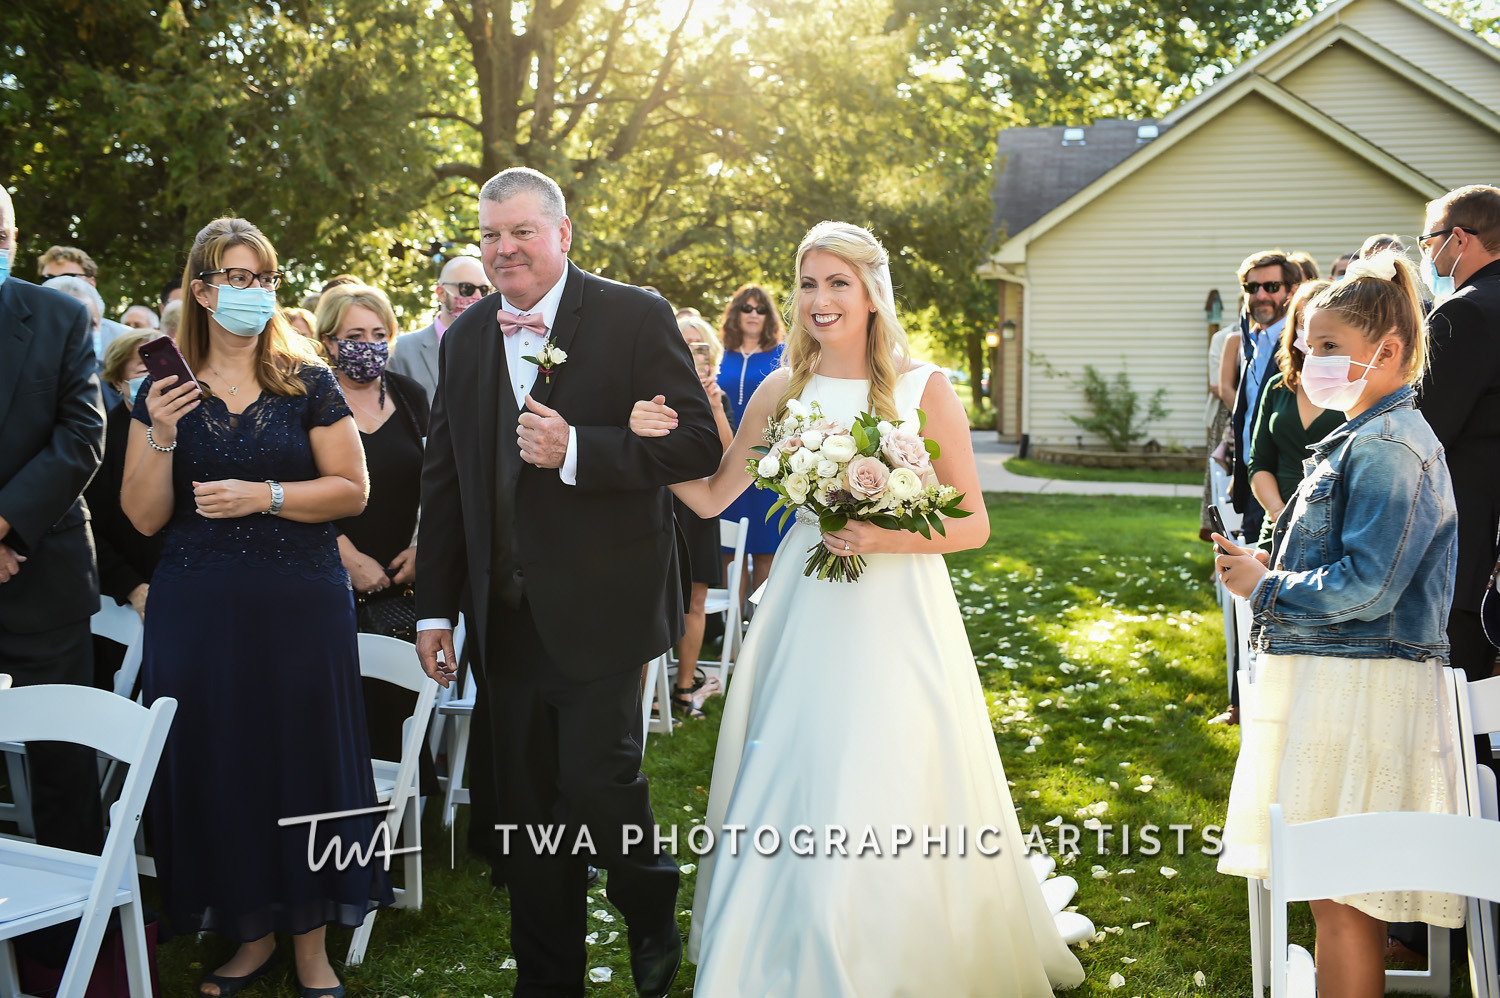 Chicago-Wedding-Photographer-TWA-Photographic-Artists-Private-Residence_Howes_Koczmara_SR_TL-0523